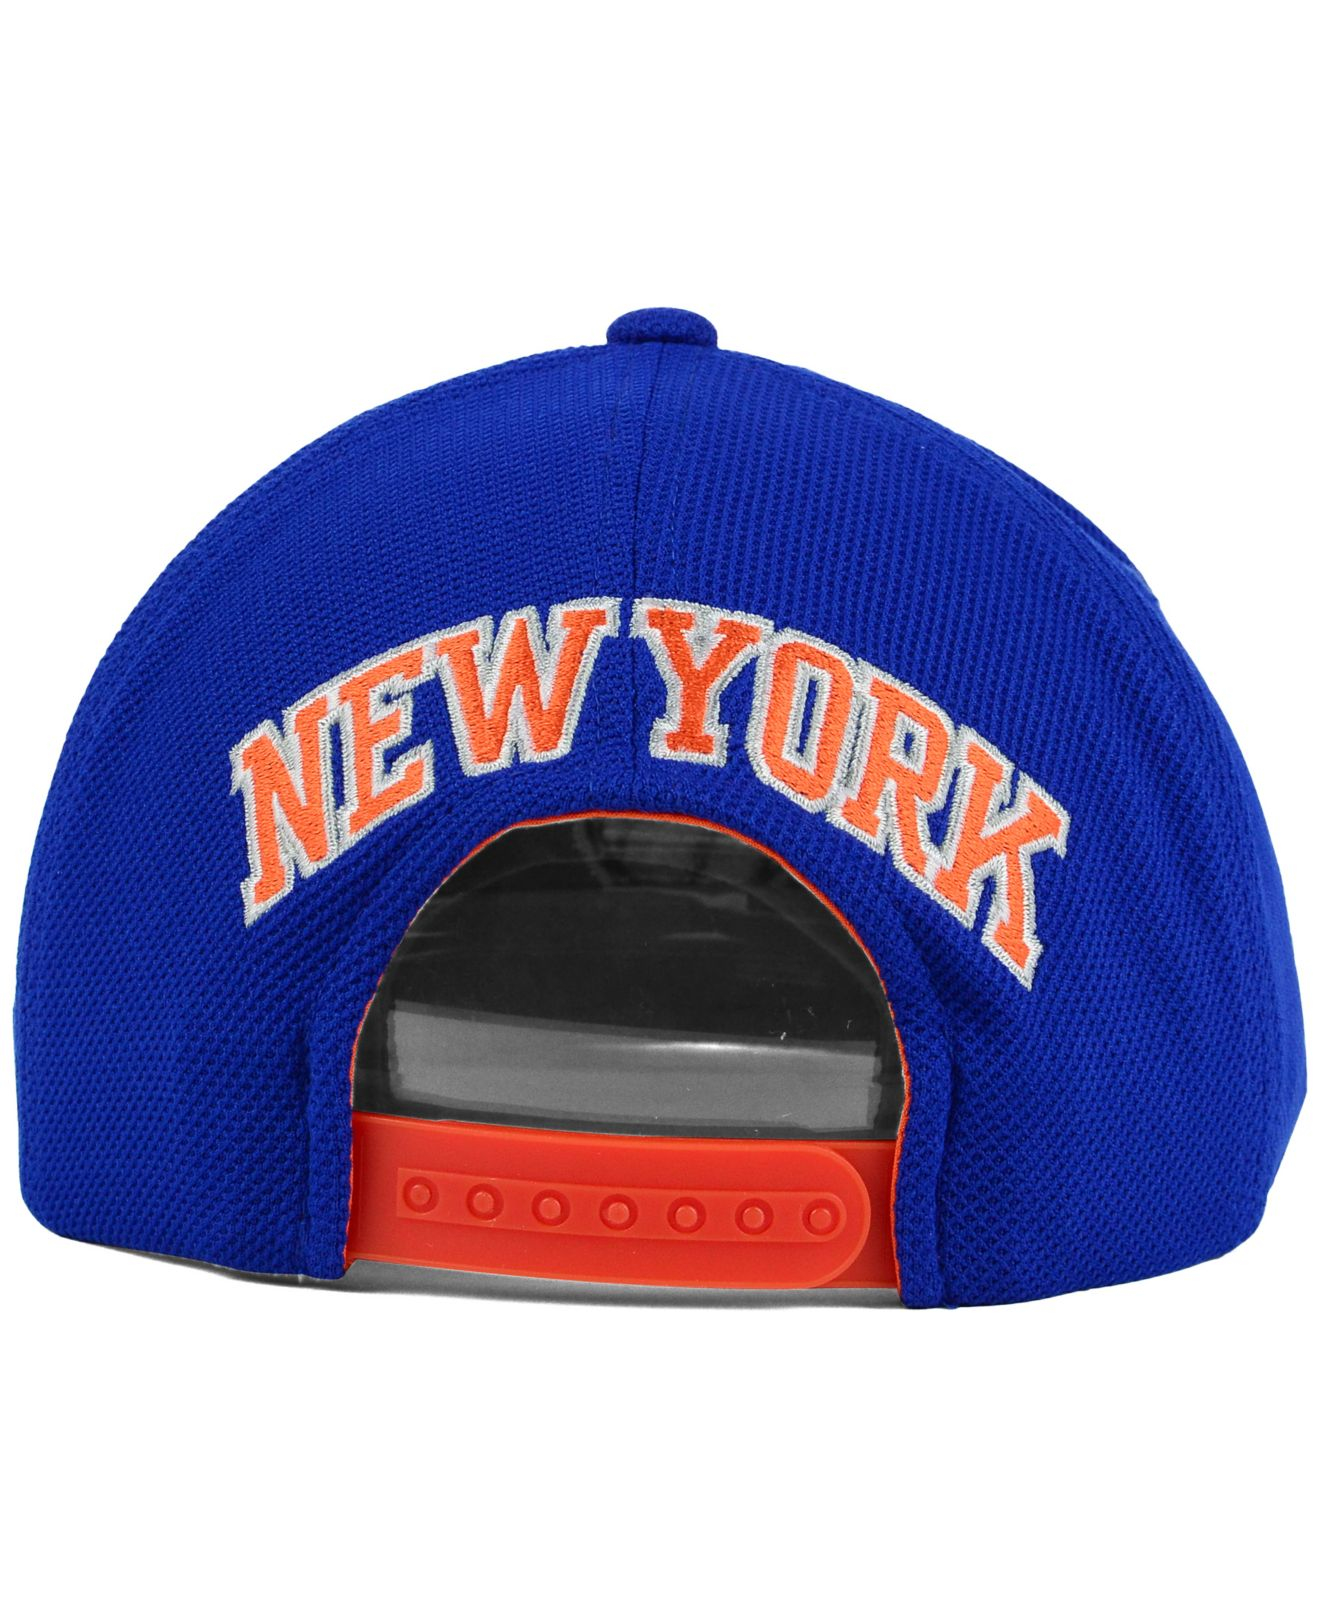 on sale 4d87f 2b10a ... where can i buy lyst adidas new york knicks 2015 nba draft snapback cap  in white